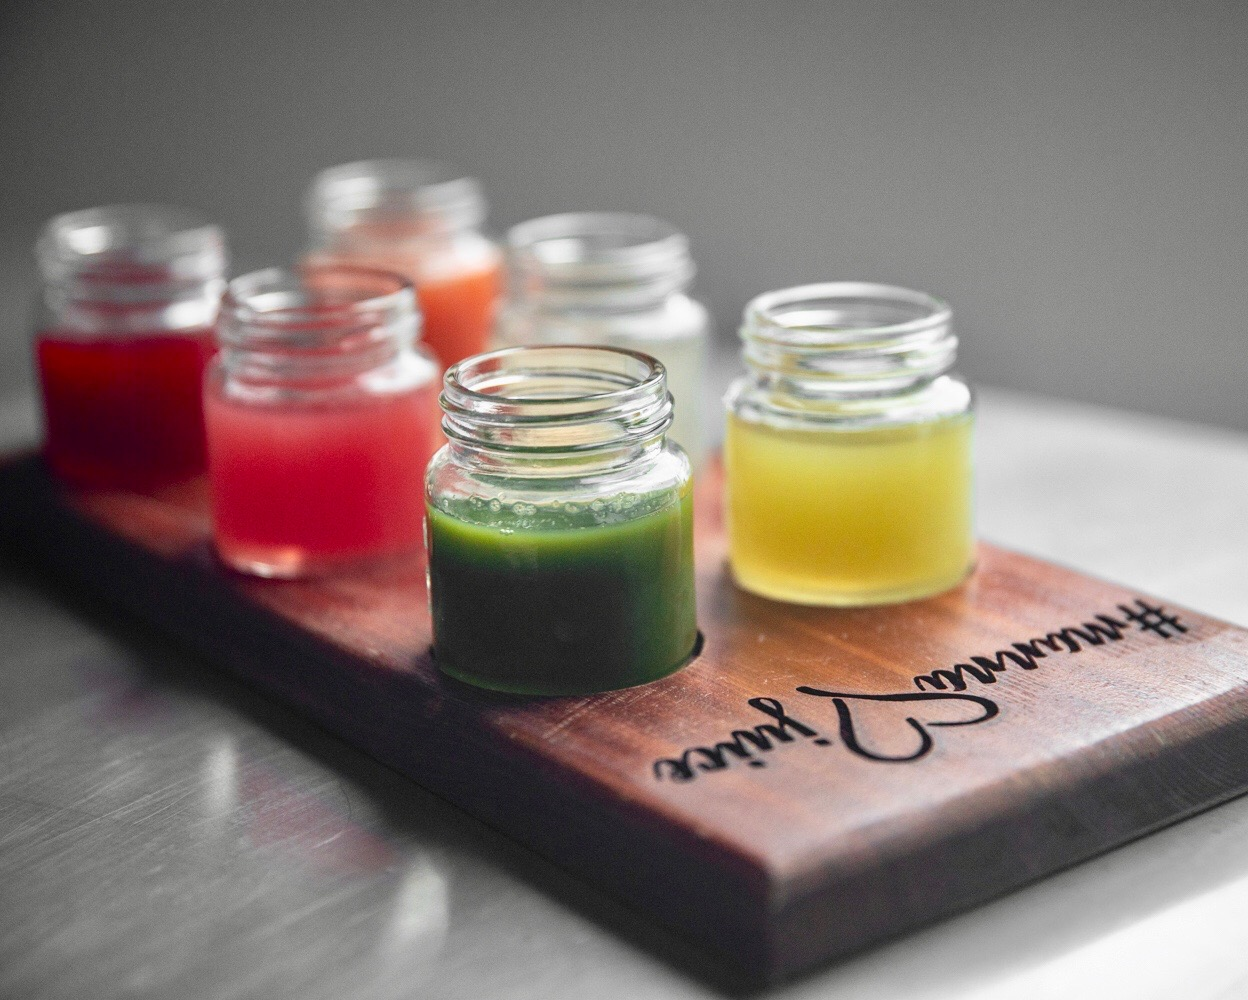 FIVE DOLLAR FLIGHT FRIDAYS! PICK ANY SIX JUICES/MYLKS TO SAMPLE IN STORE!